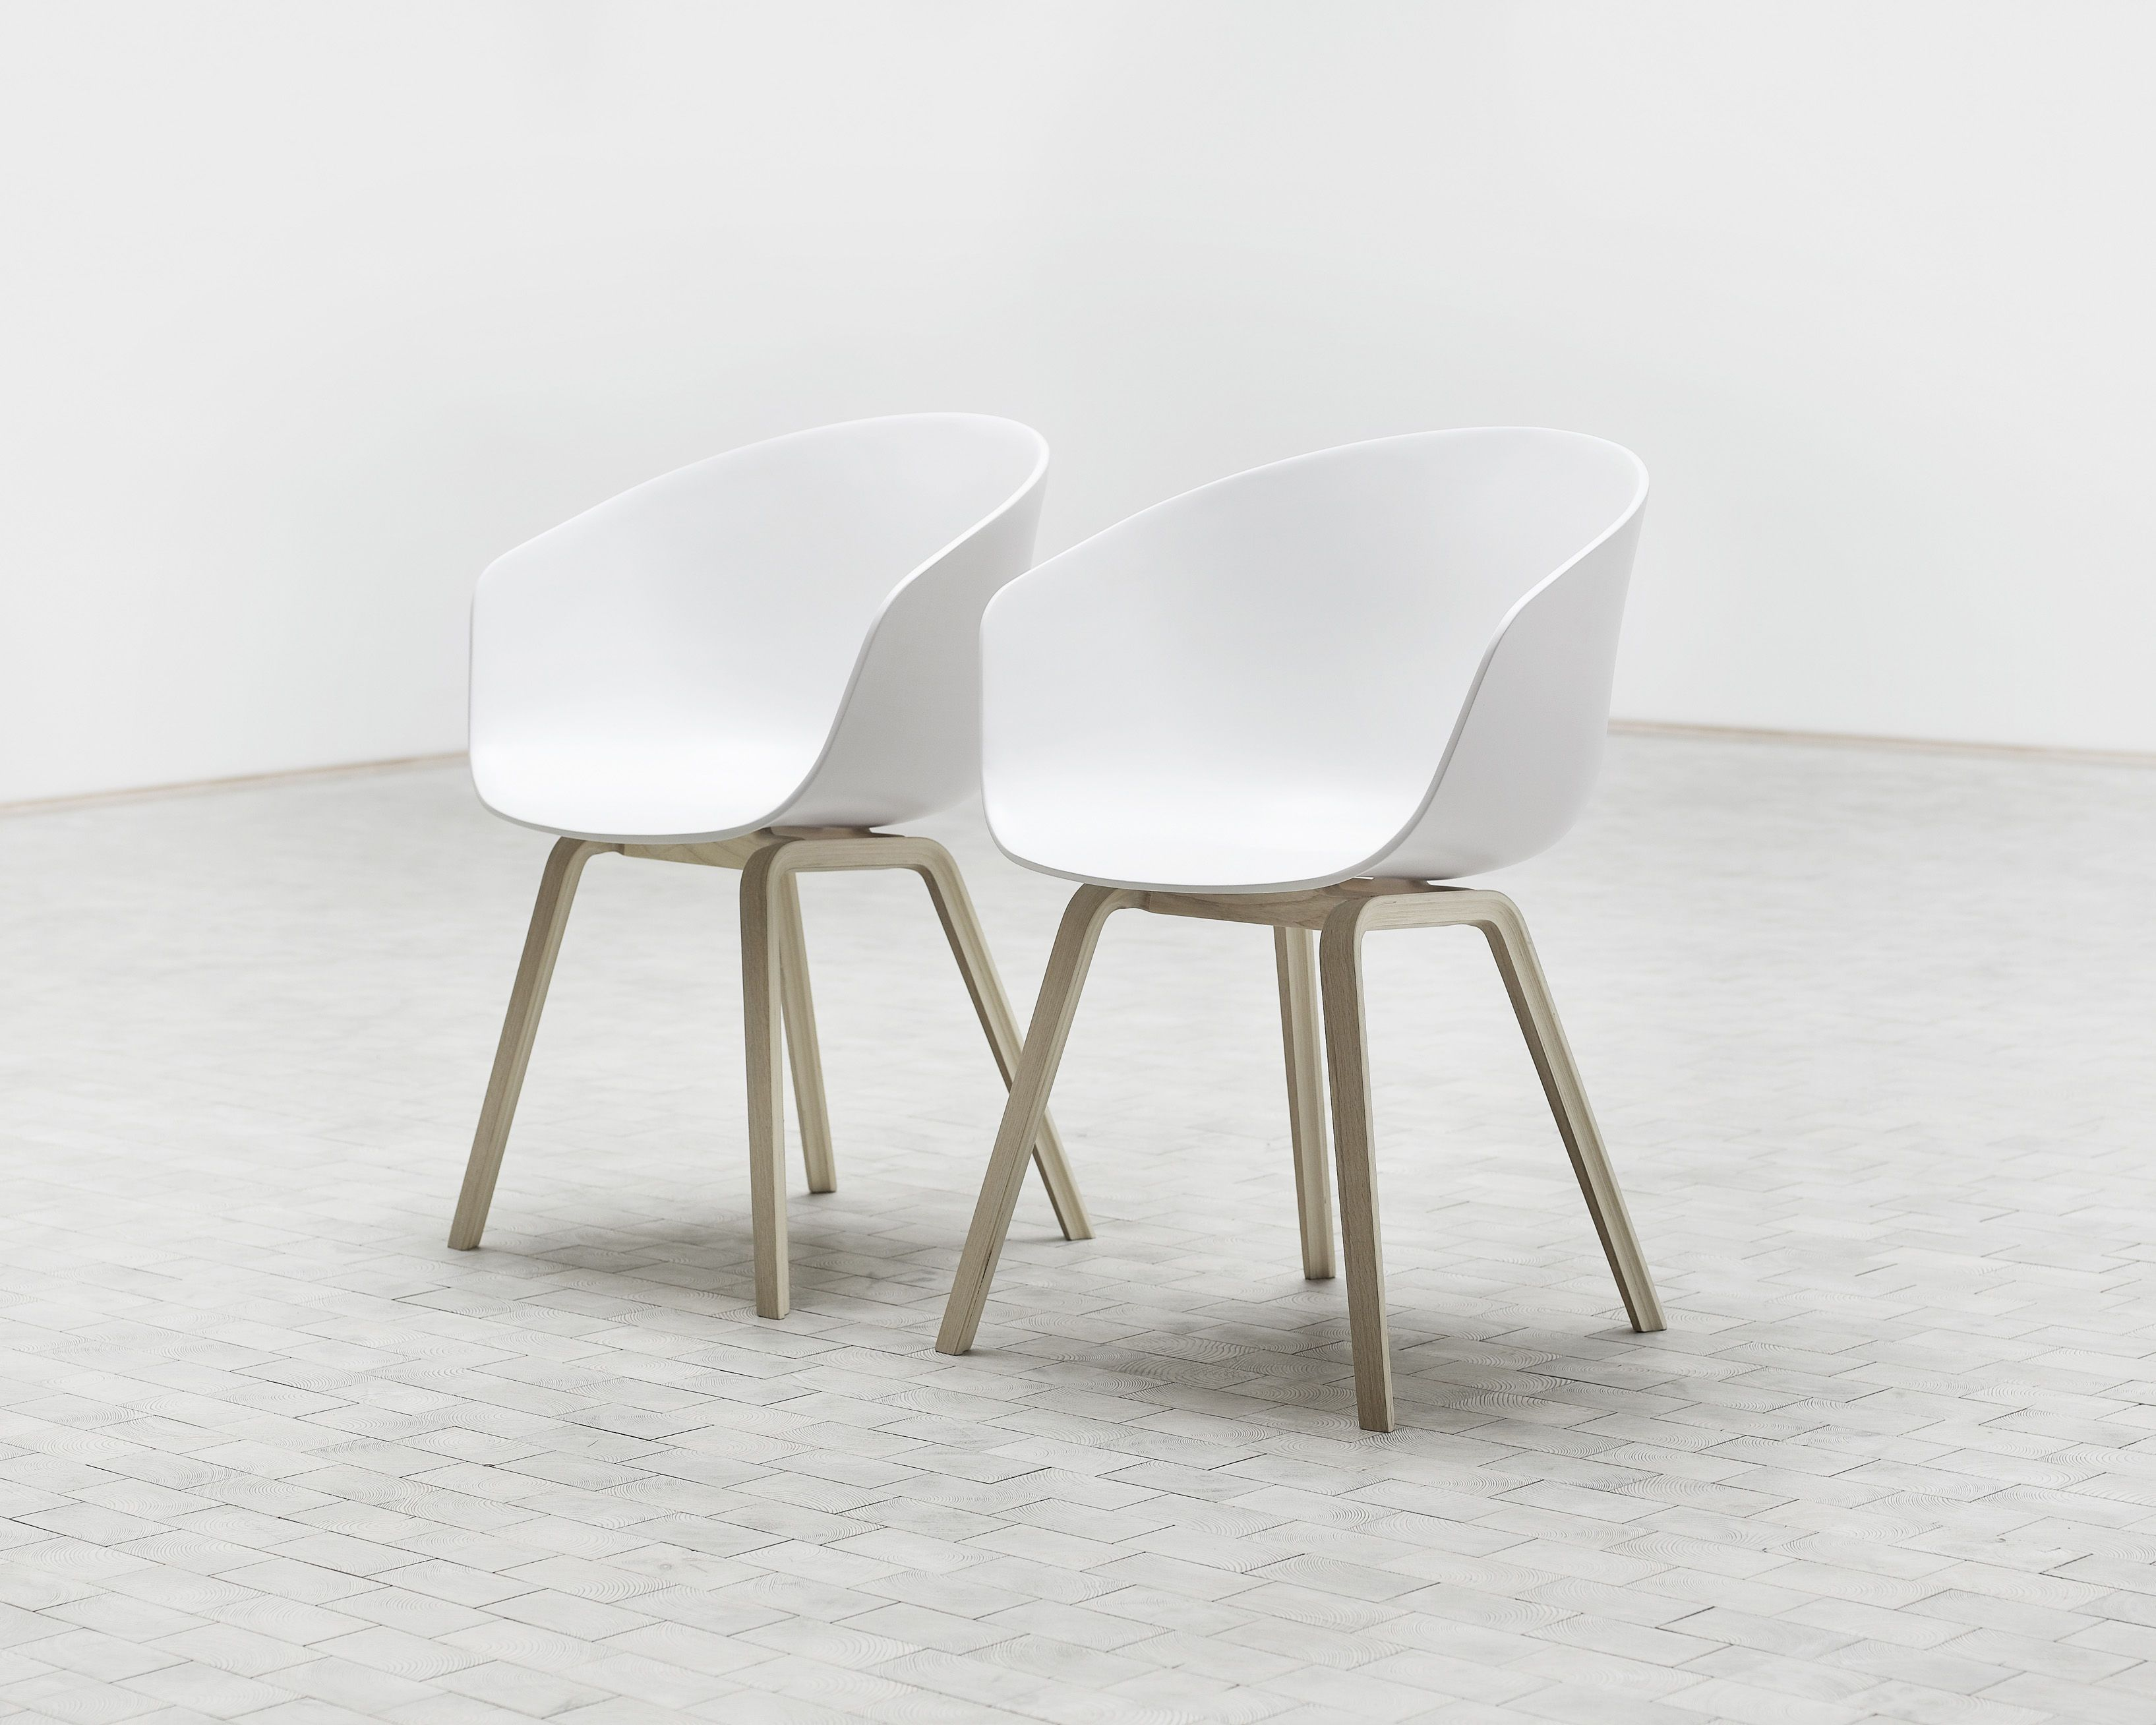 About A Chair Armchair Plastic Shell Wood Legs By Hay In 2019